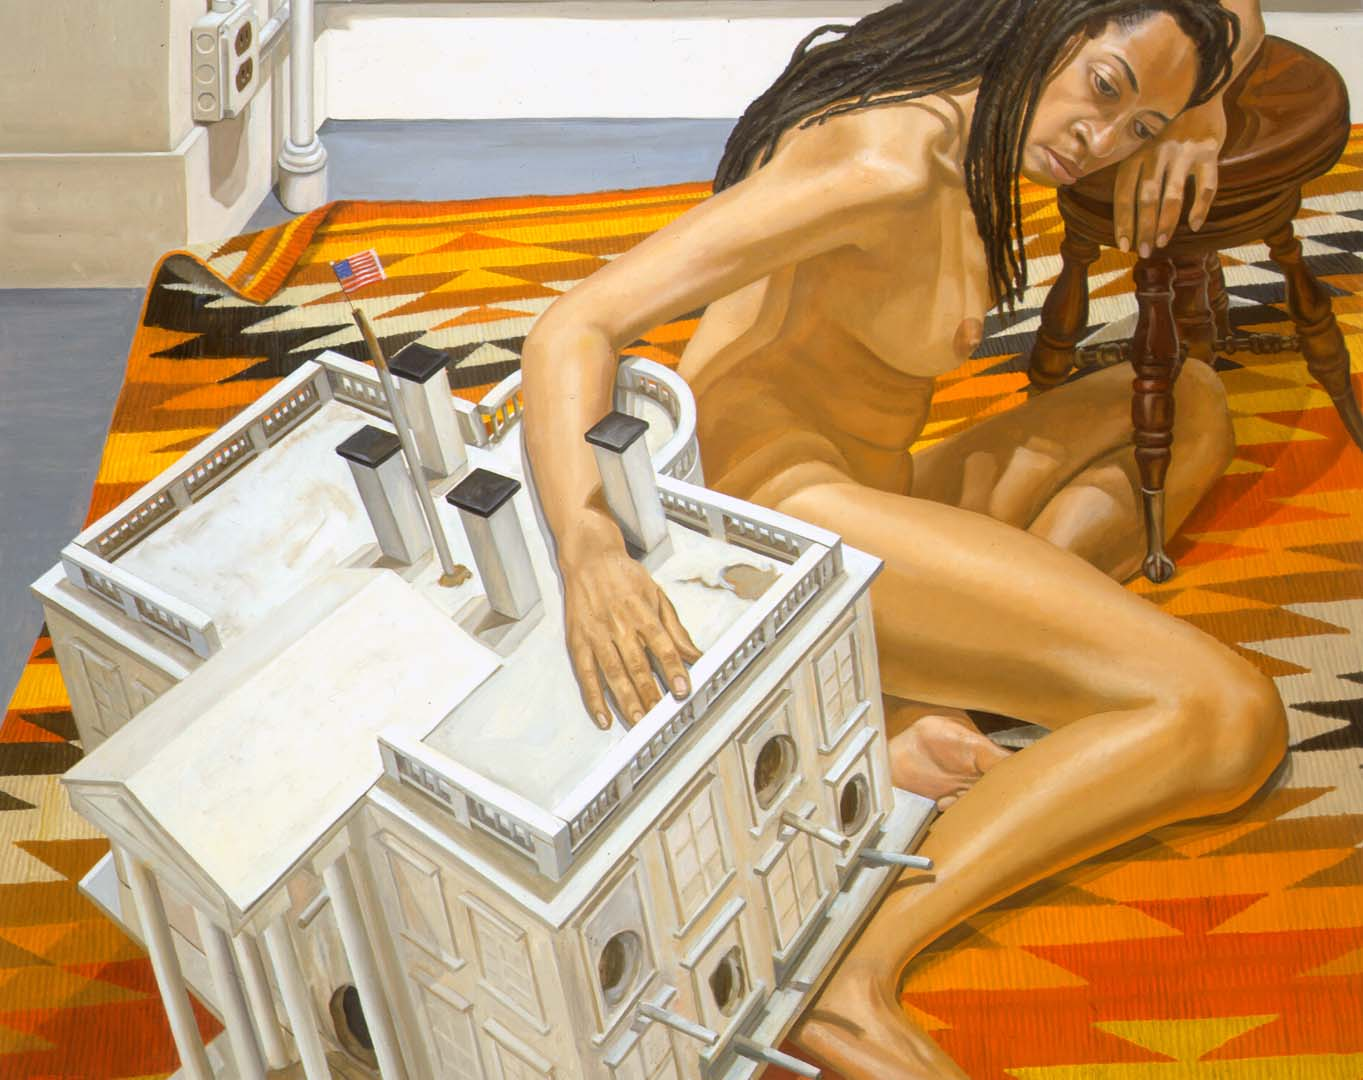 "2000 Model with Dreadlocks and White House as Birdhouse Oil on Canvas 48"" x 60"""